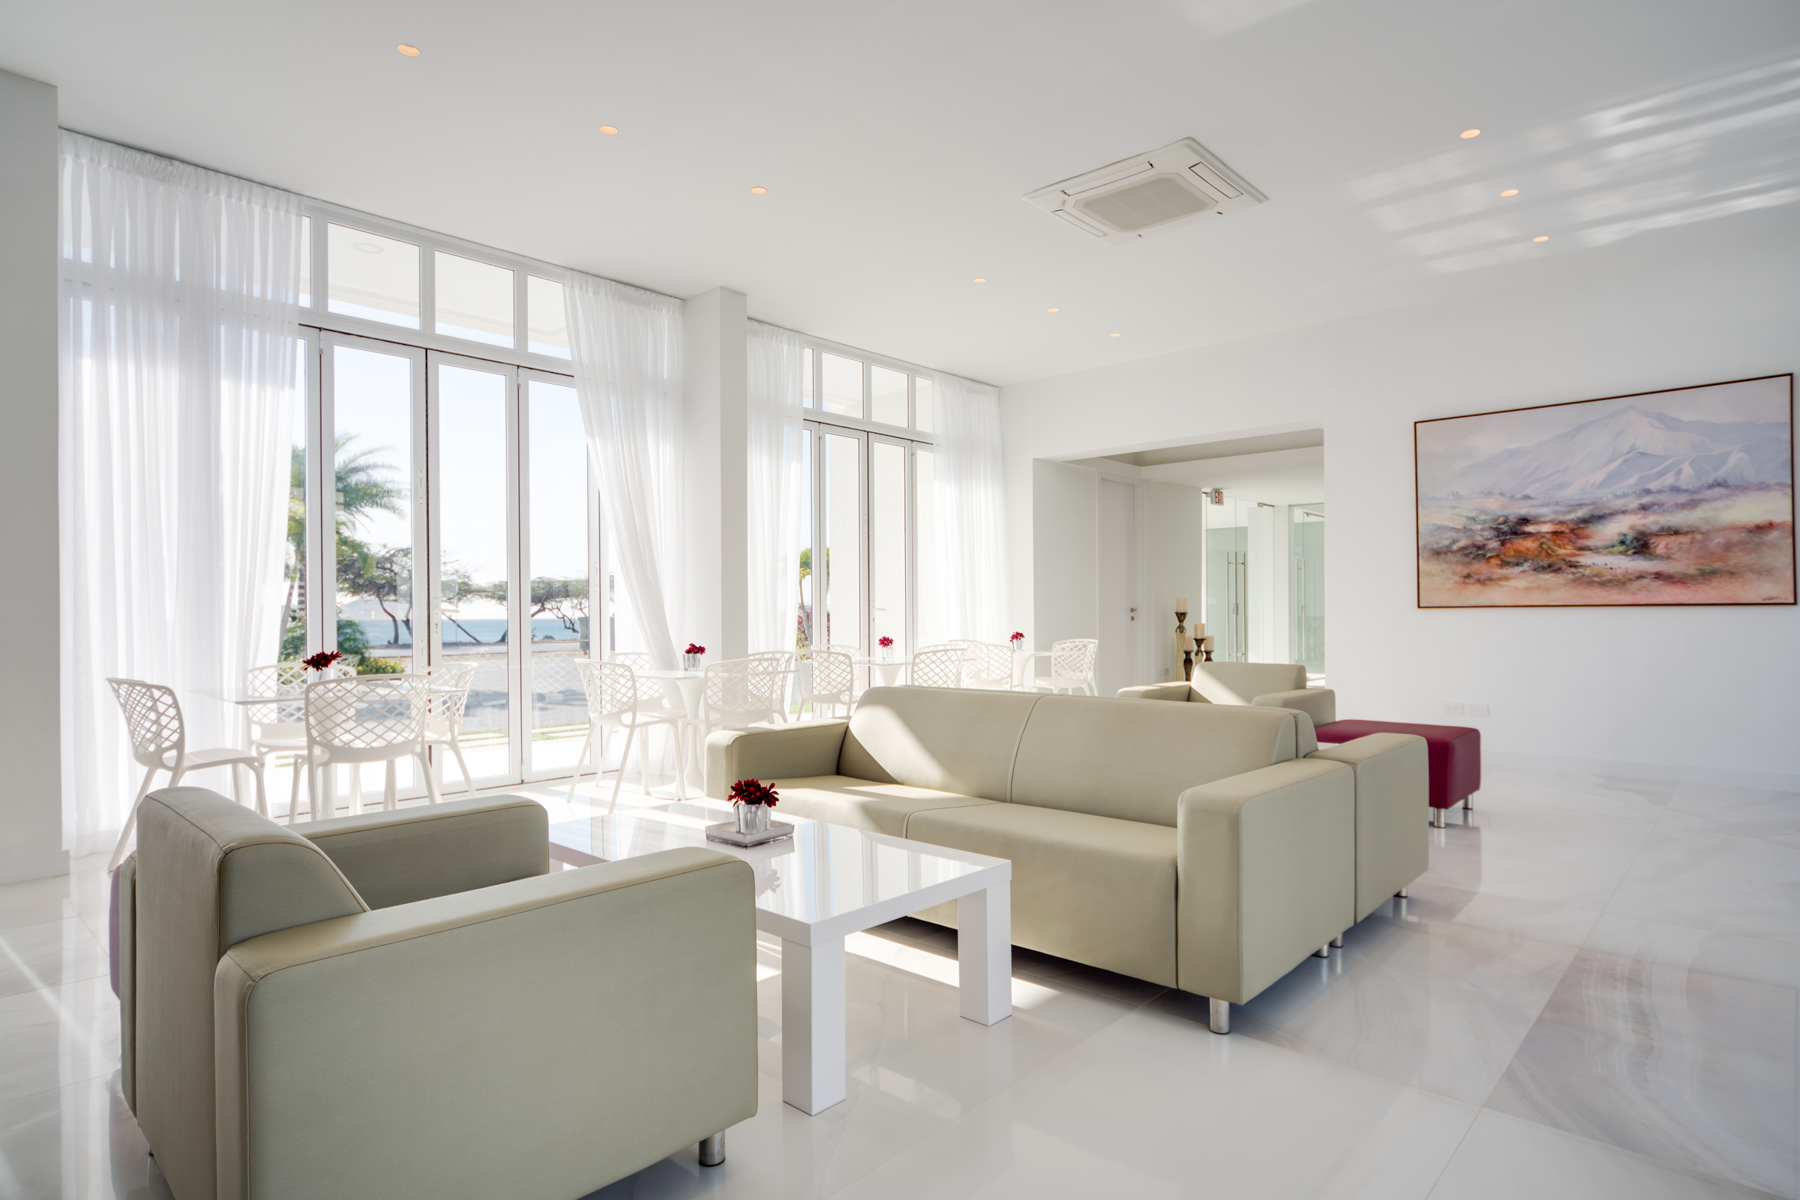 Additional photo for property listing at OceanZ Boutique Hotel Malmok, Aruba Aruba